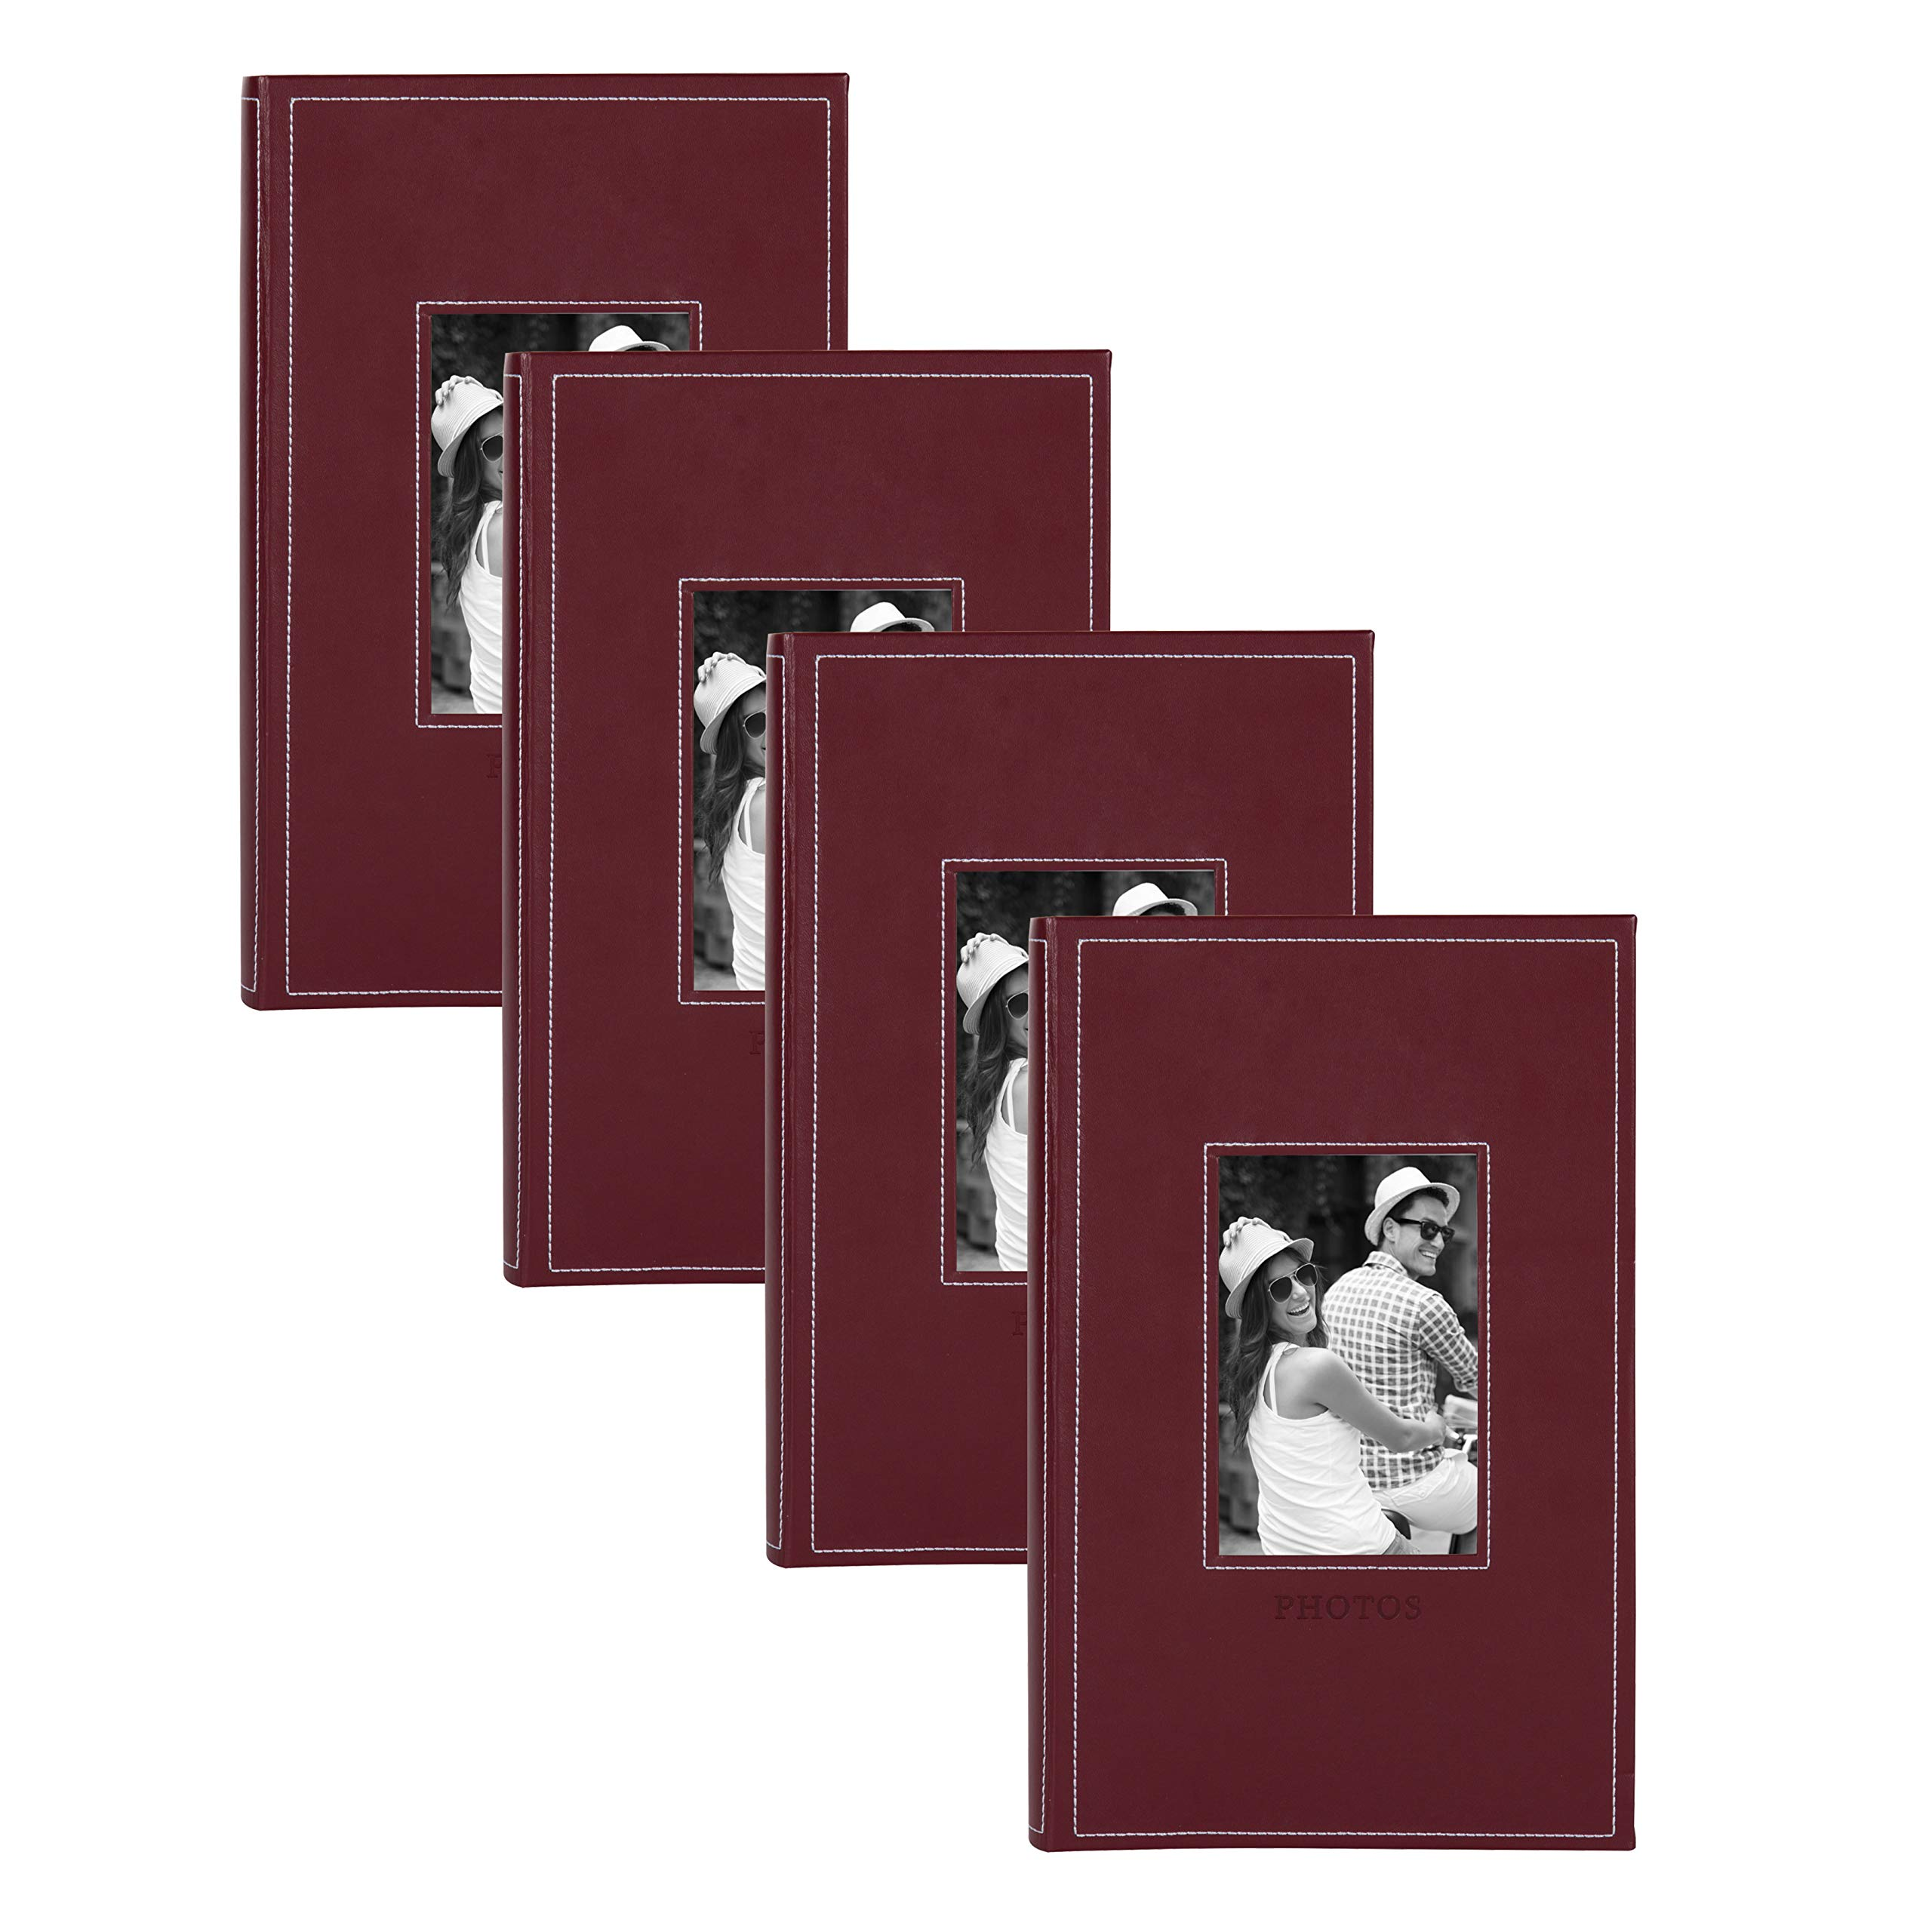 DesignOvation Debossed Faux Leather Photo Albums, Holds 300 4x6 Photos, Set of 4, Burgundy Red by DesignOvation